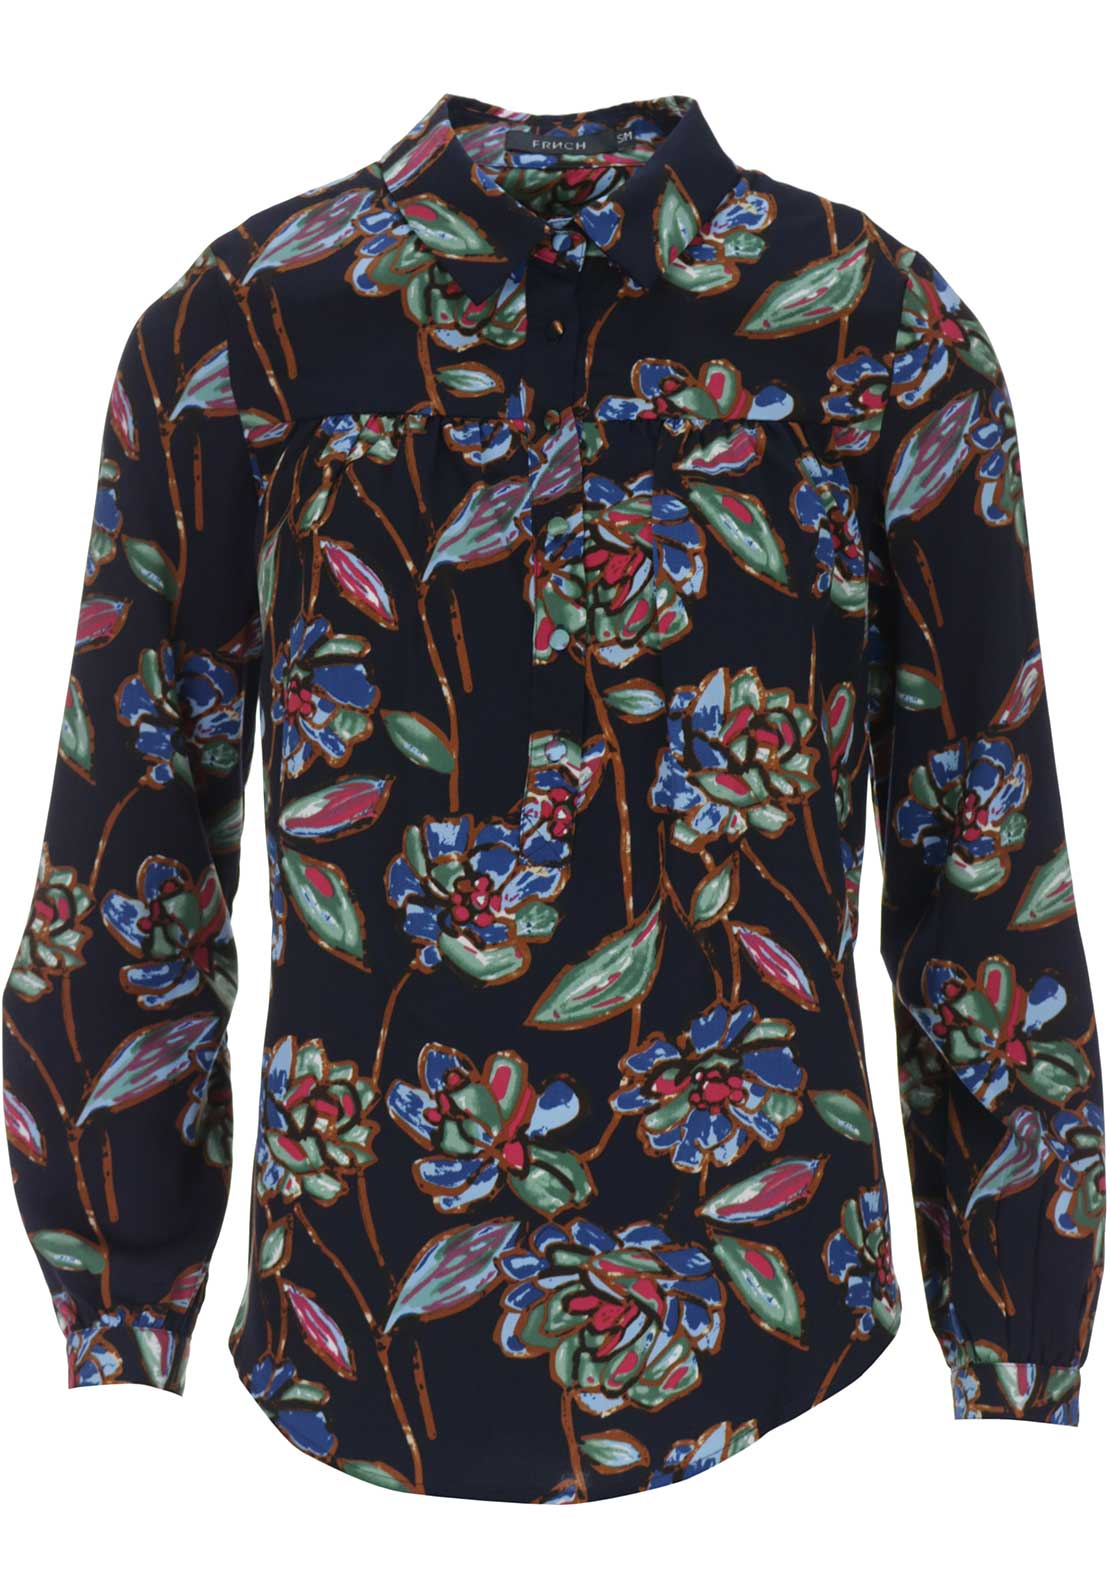 FRNCH Floral Print Blouse, Navy